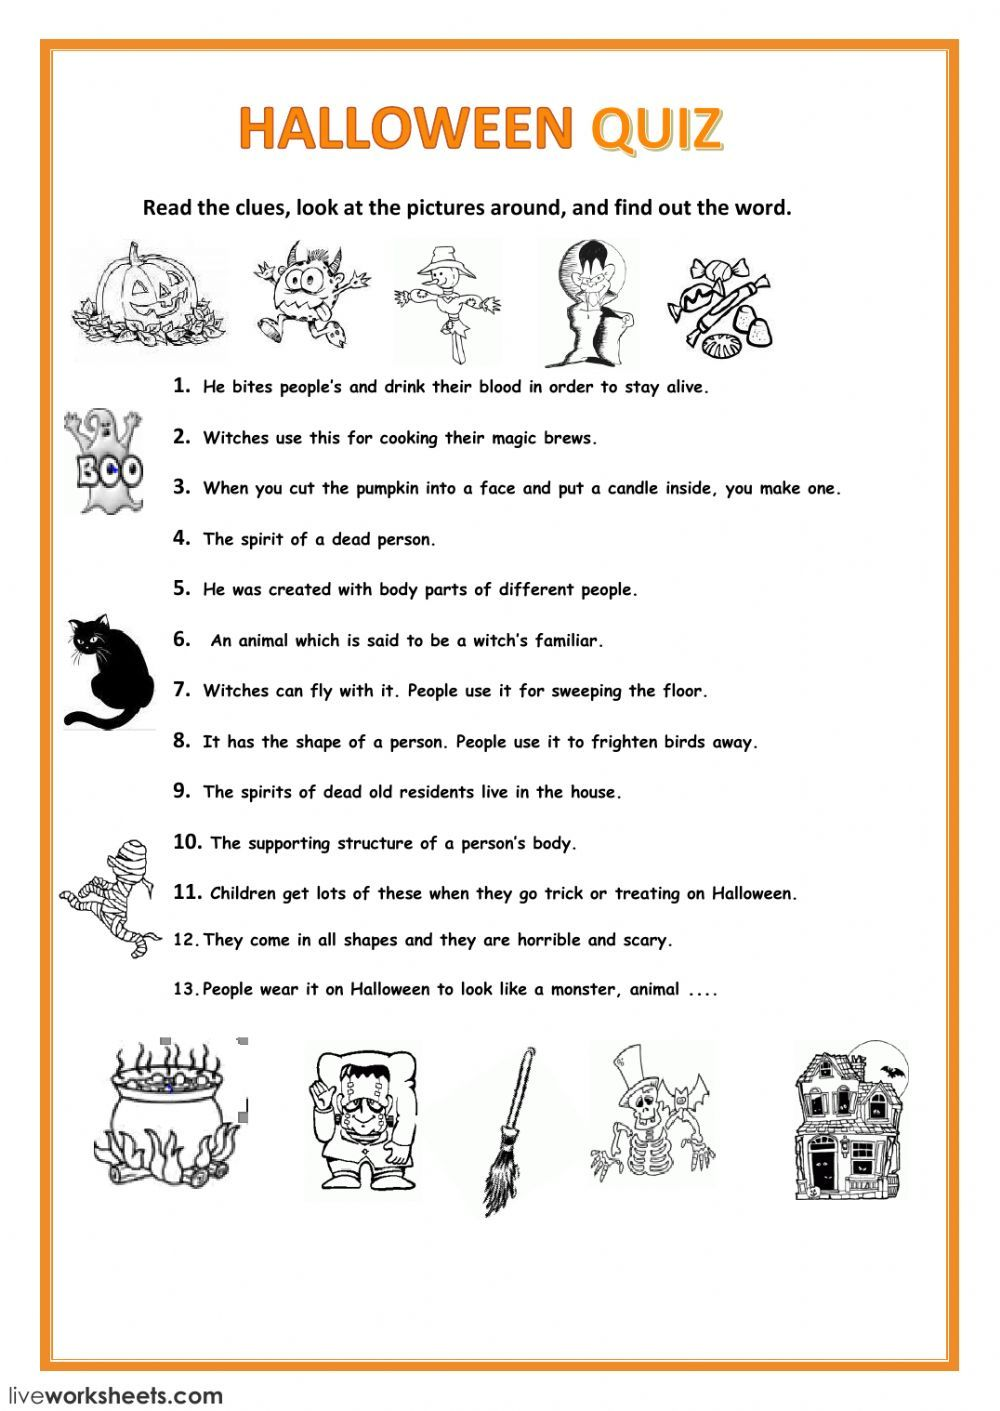 Halloween Interactive And Downloadable Worksheet You Can Do The Exercises Online Or Download The Workshee Halloween Worksheets Halloween Lesson Halloween Quiz